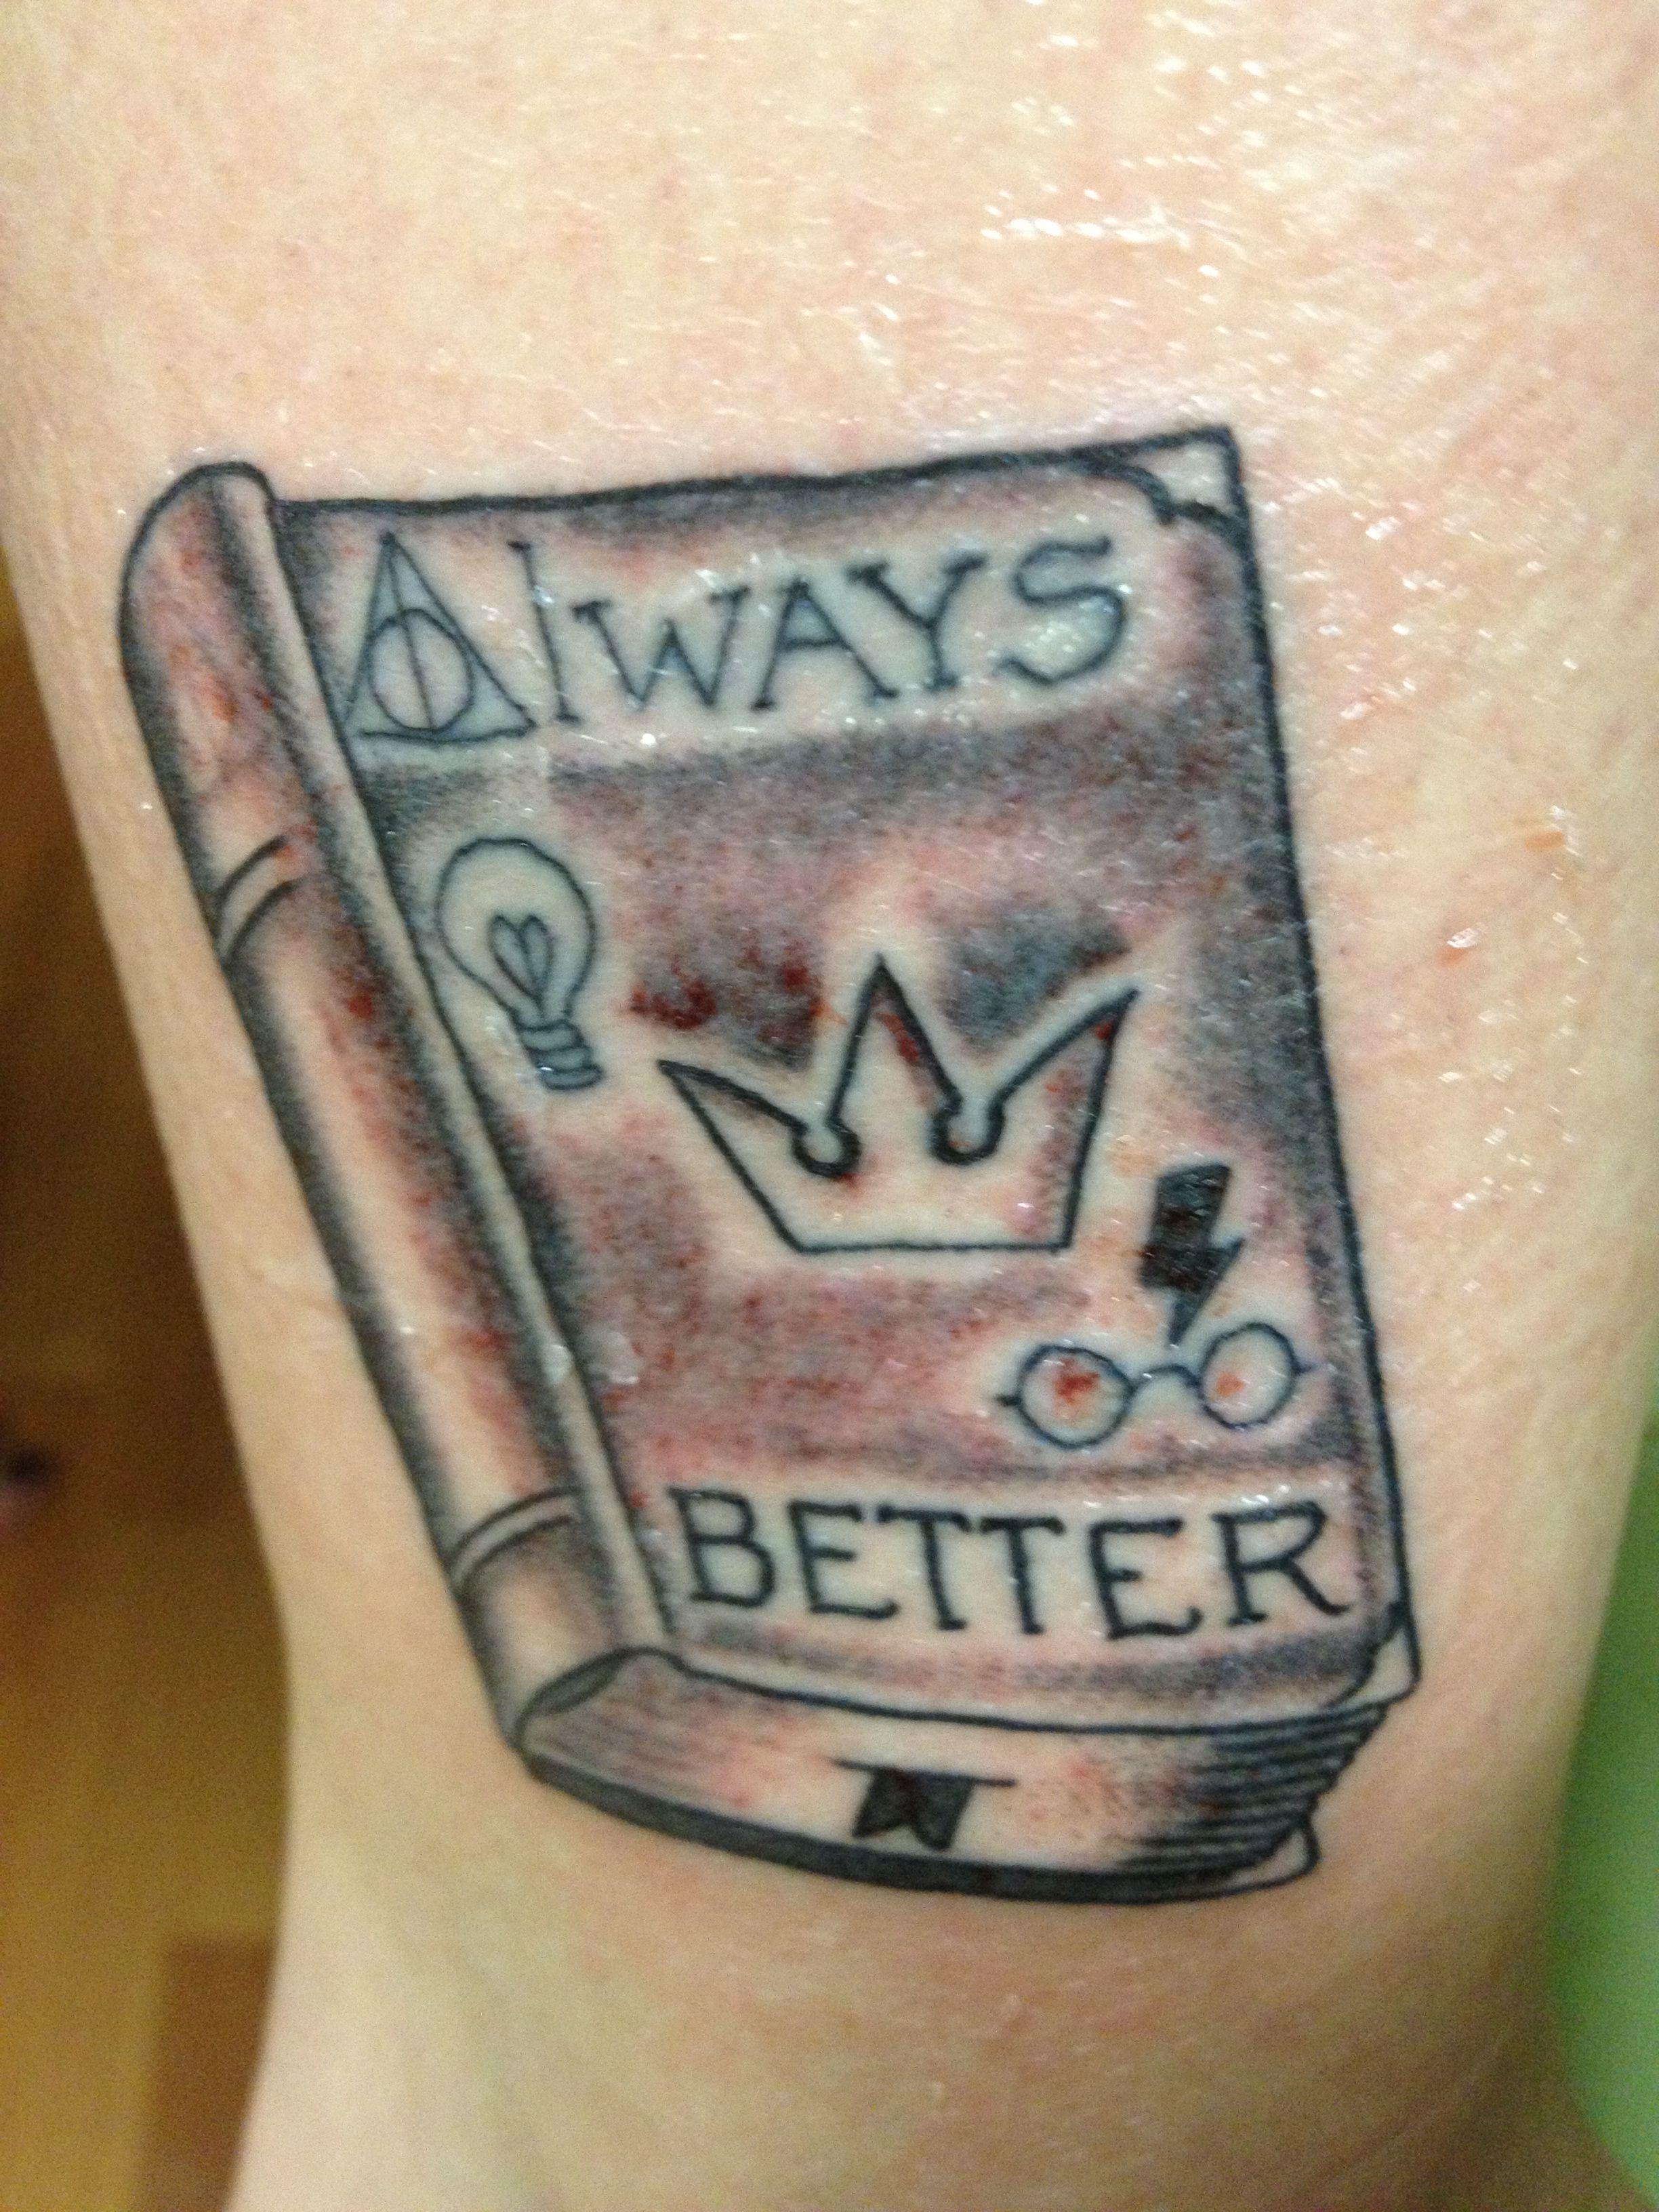 Harry potter tattoo meaningdescription behind my tat deathly harry potter tattoo meaningdescription behind my tat deathly hallows always weasley biocorpaavc Gallery